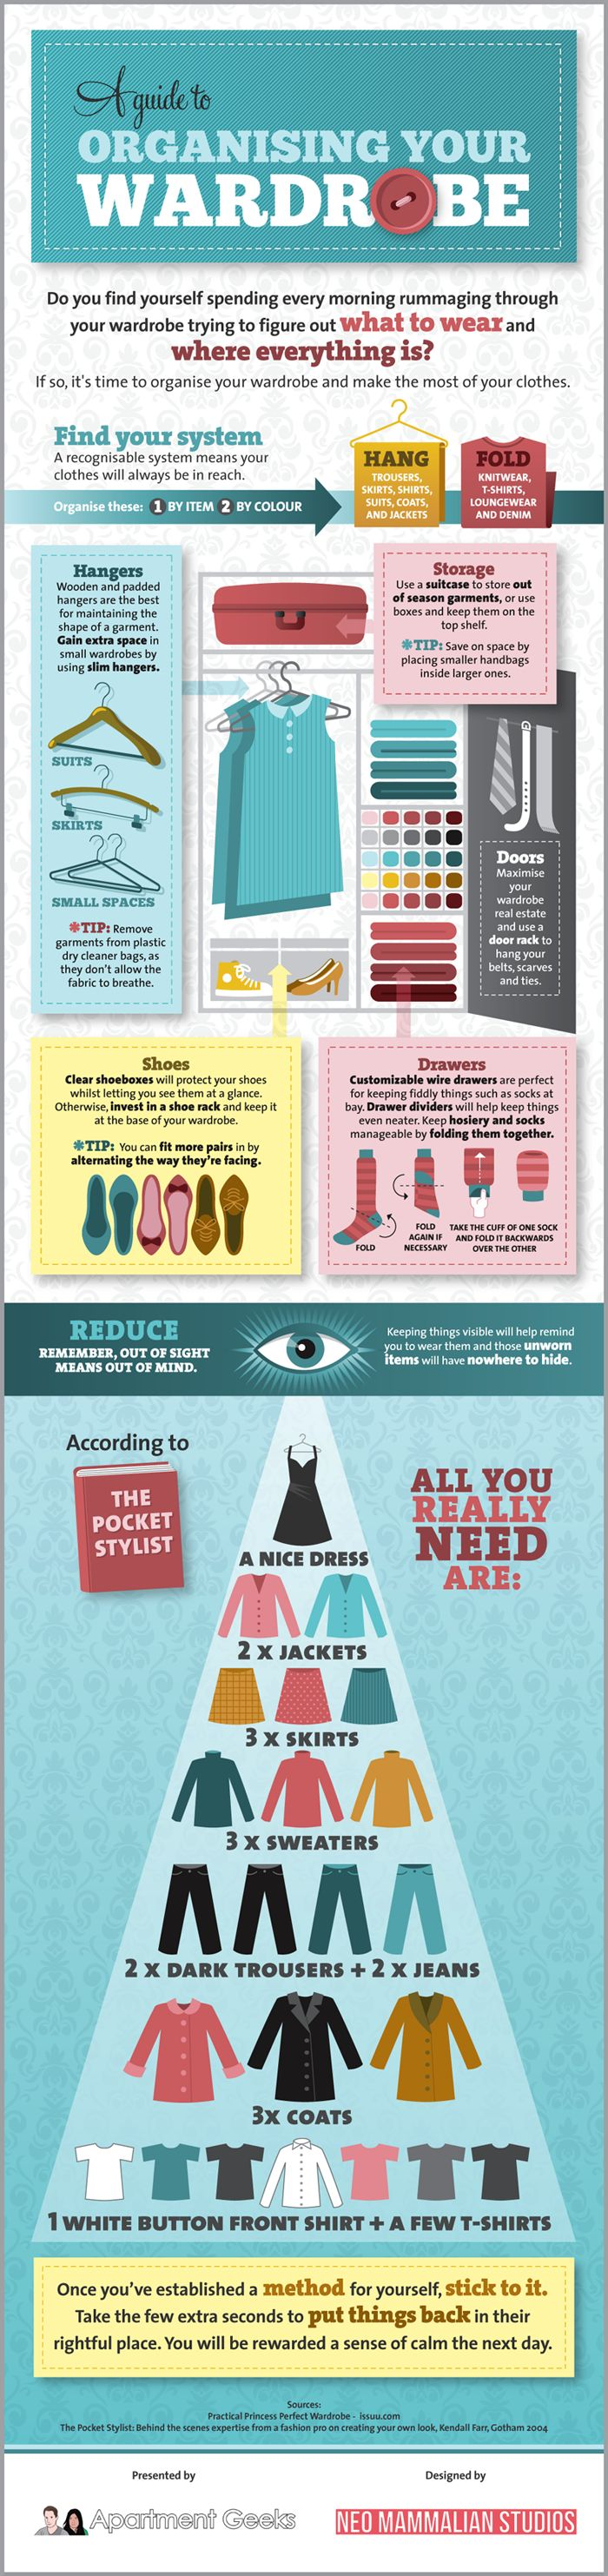 Great infographic for organizing your wardrobe or closet!